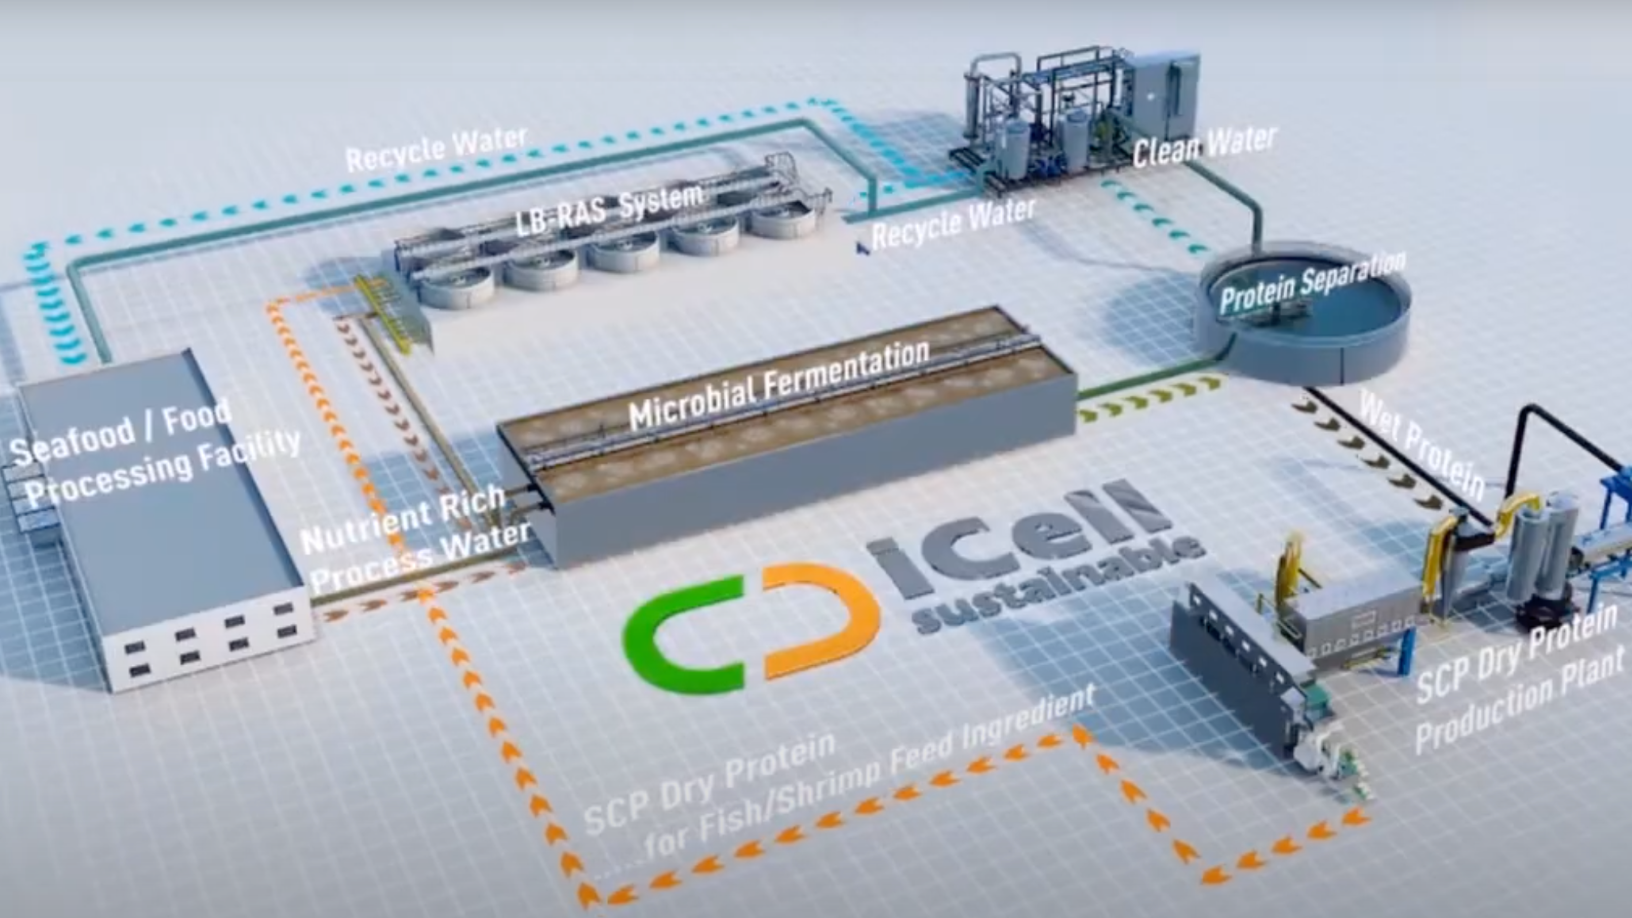 iCell: Upcycling nutrients from wastewater